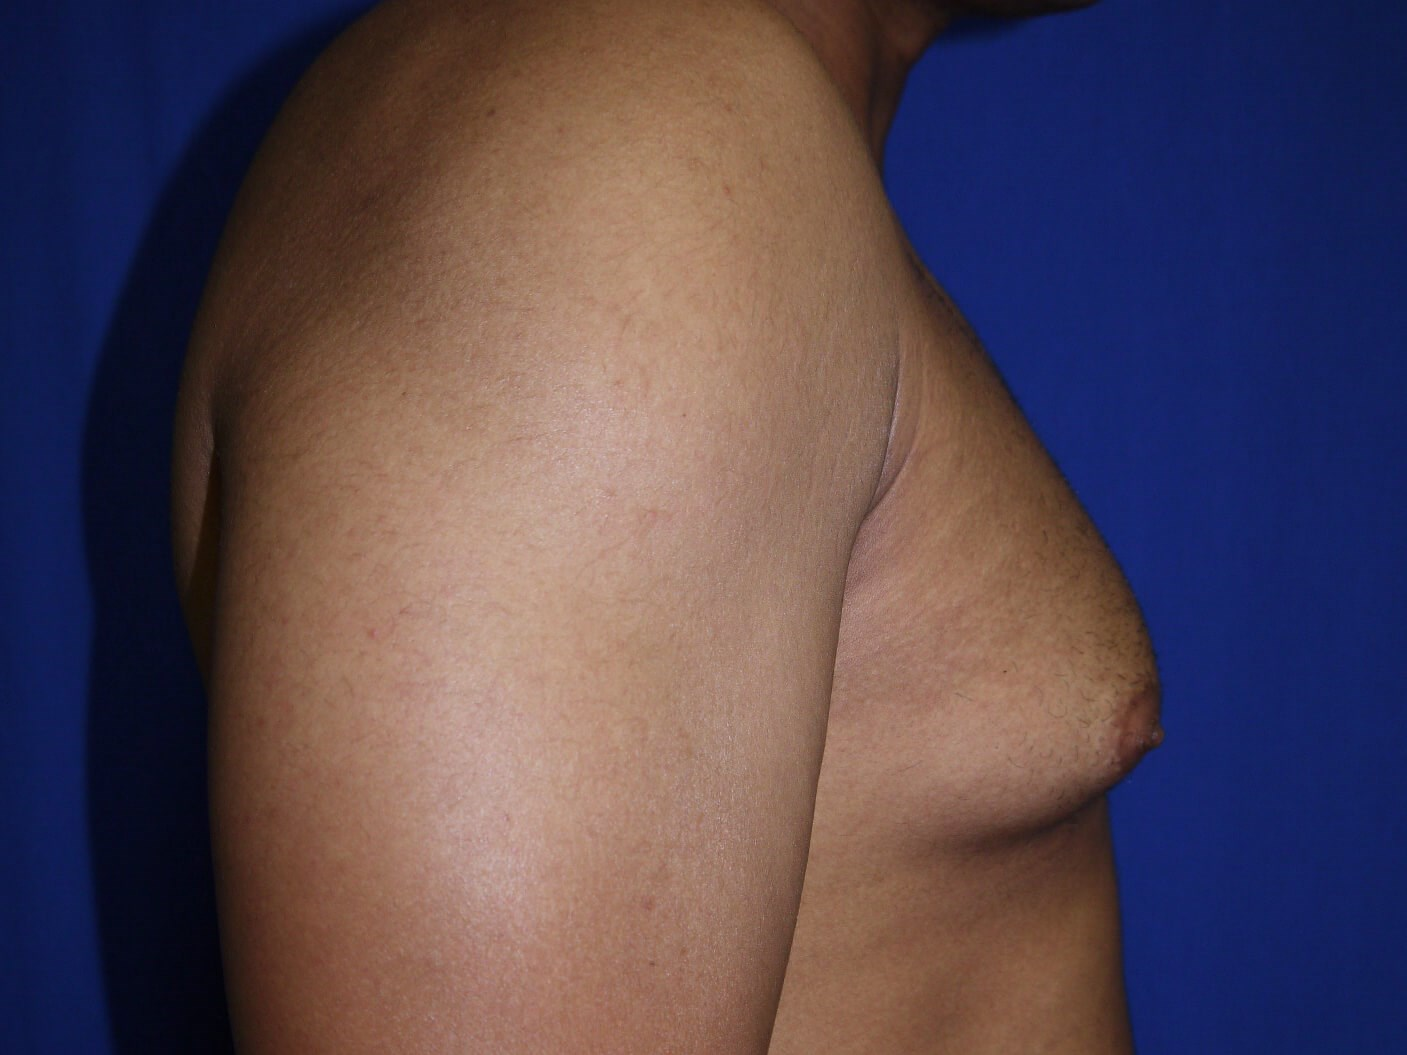 gynecomastia before - Right View